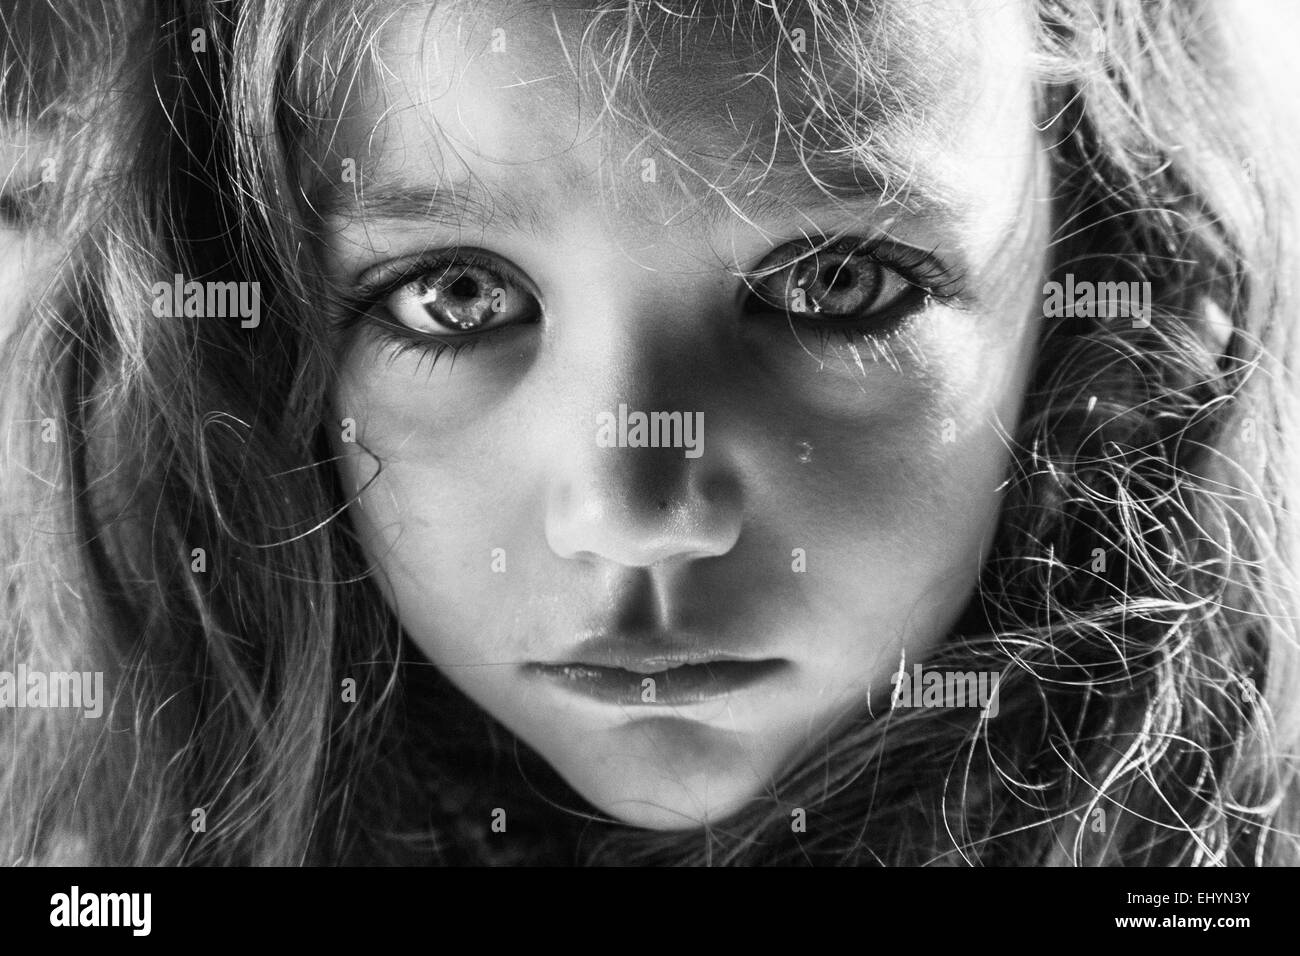 Portrait of a girl crying with a tear running down her face Stock Photo